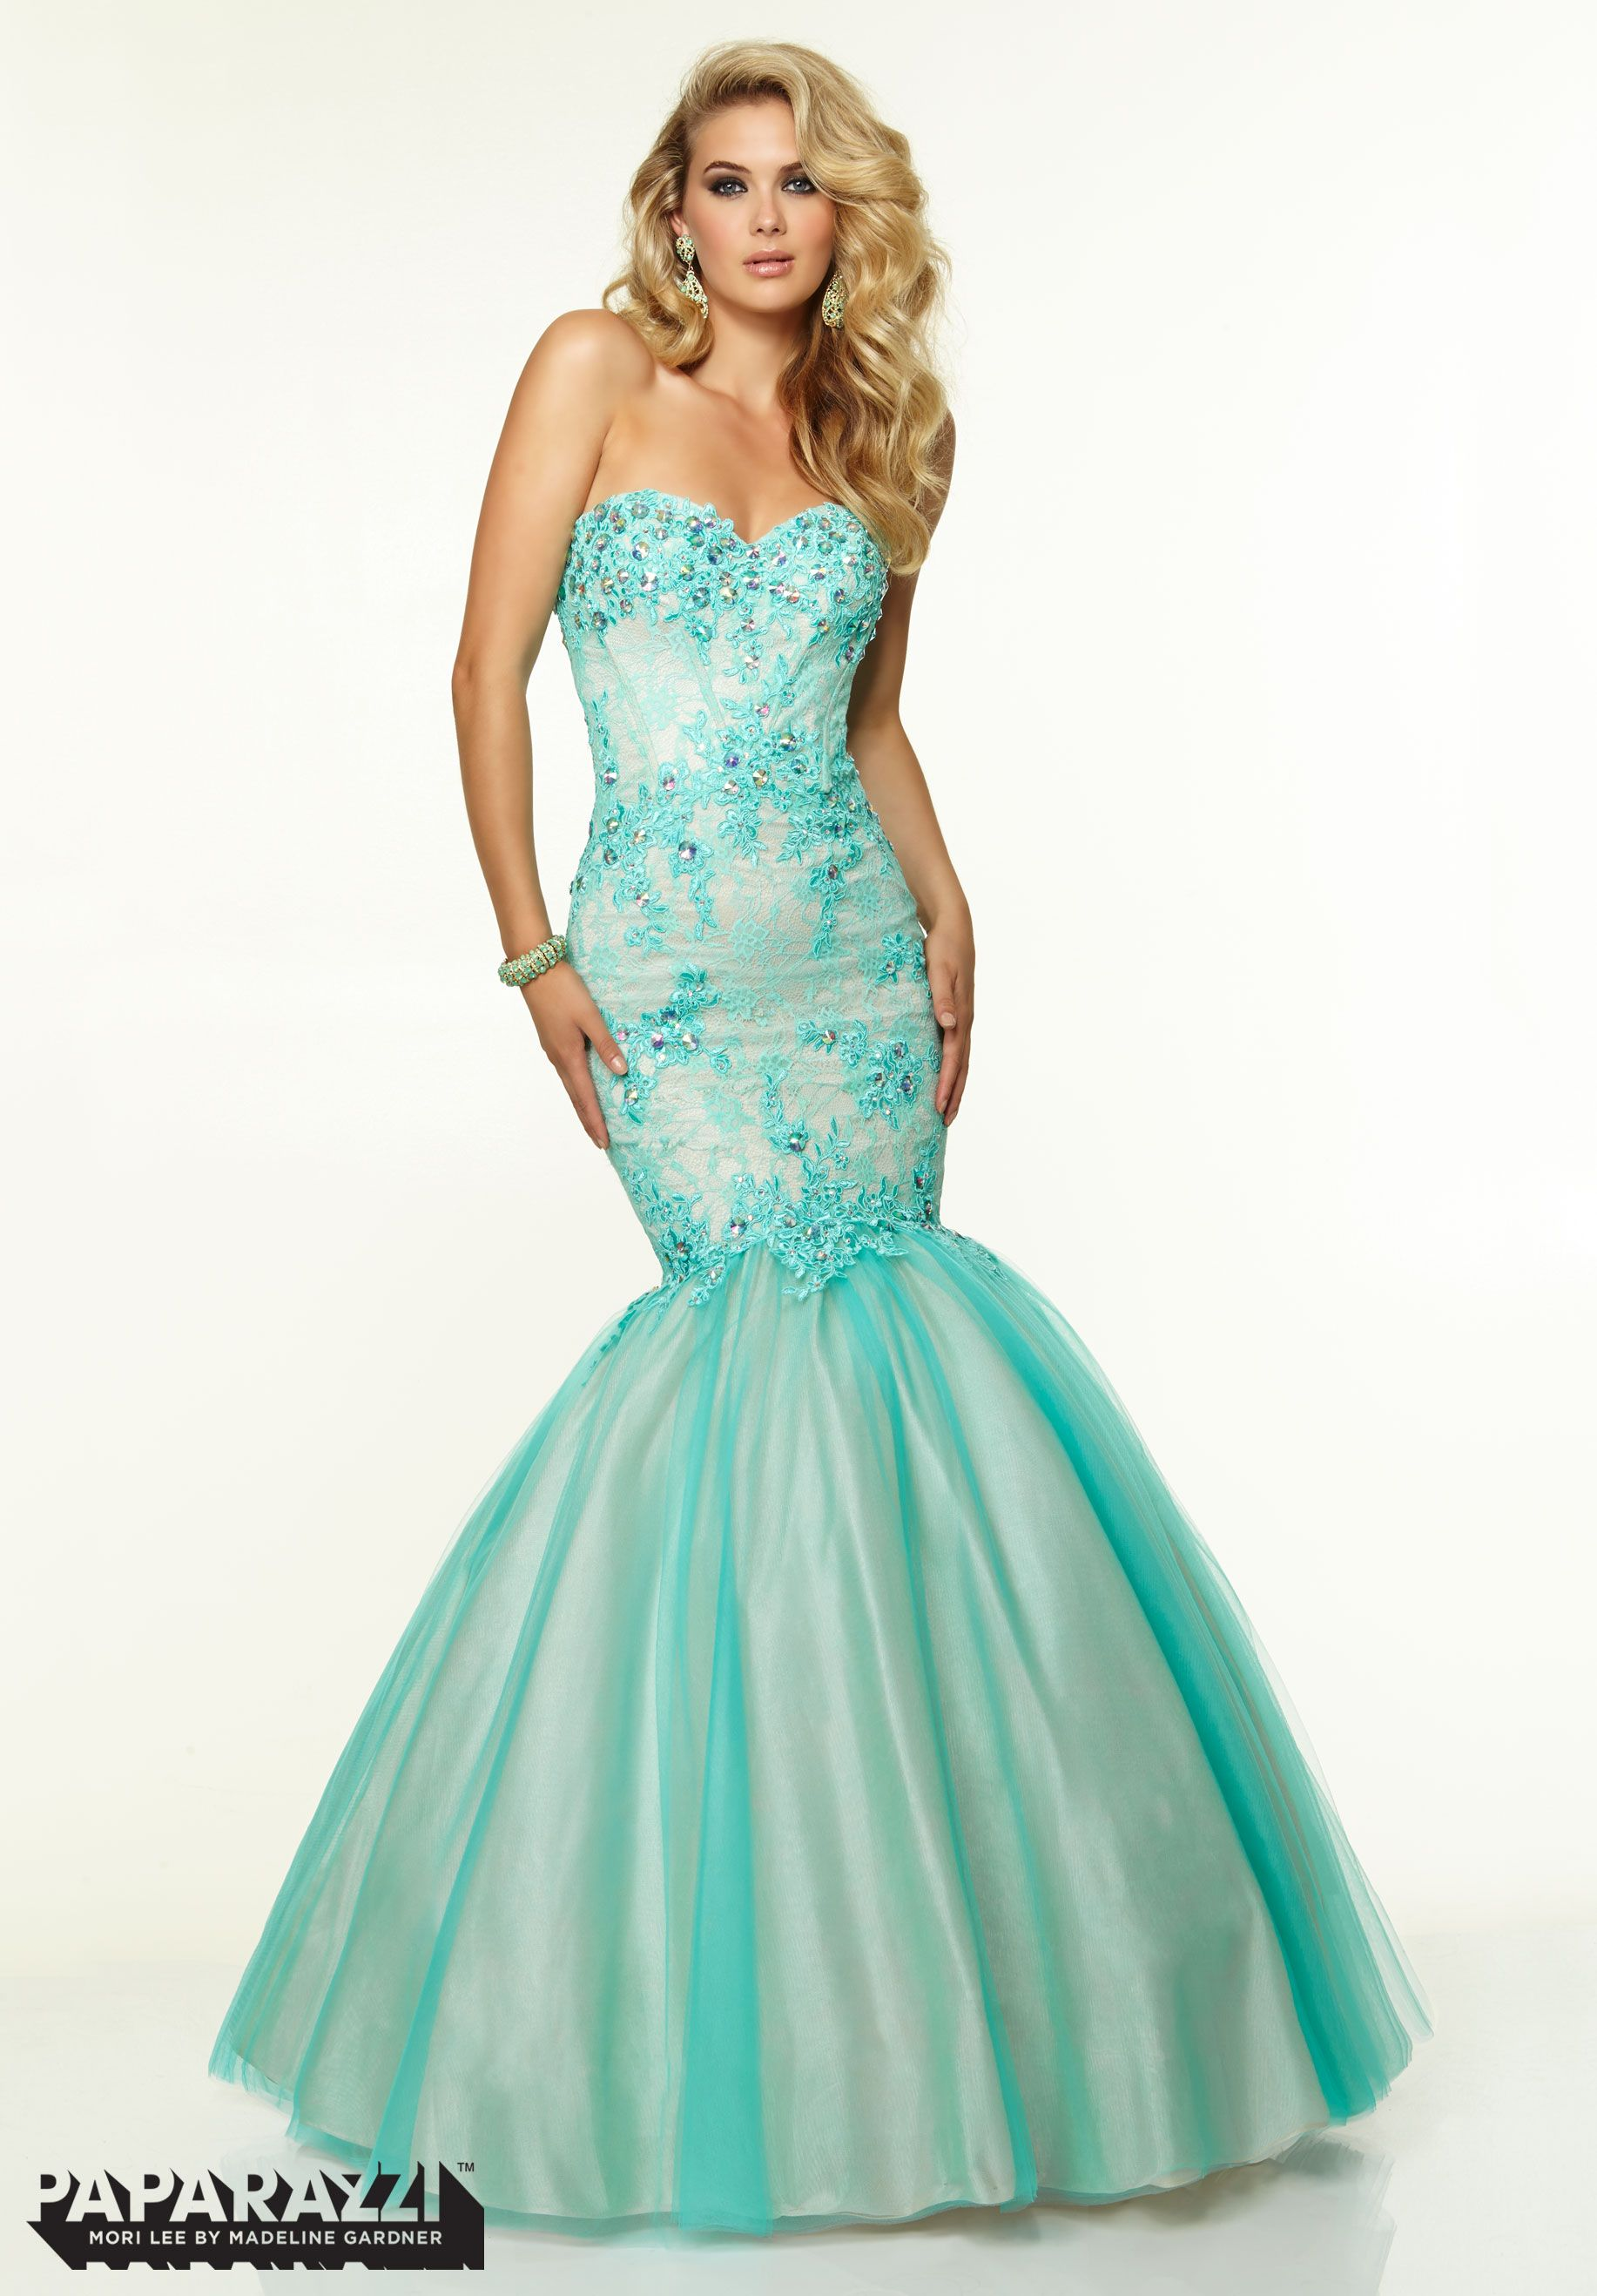 Prom dresses gowns style lace with jeweled beading on